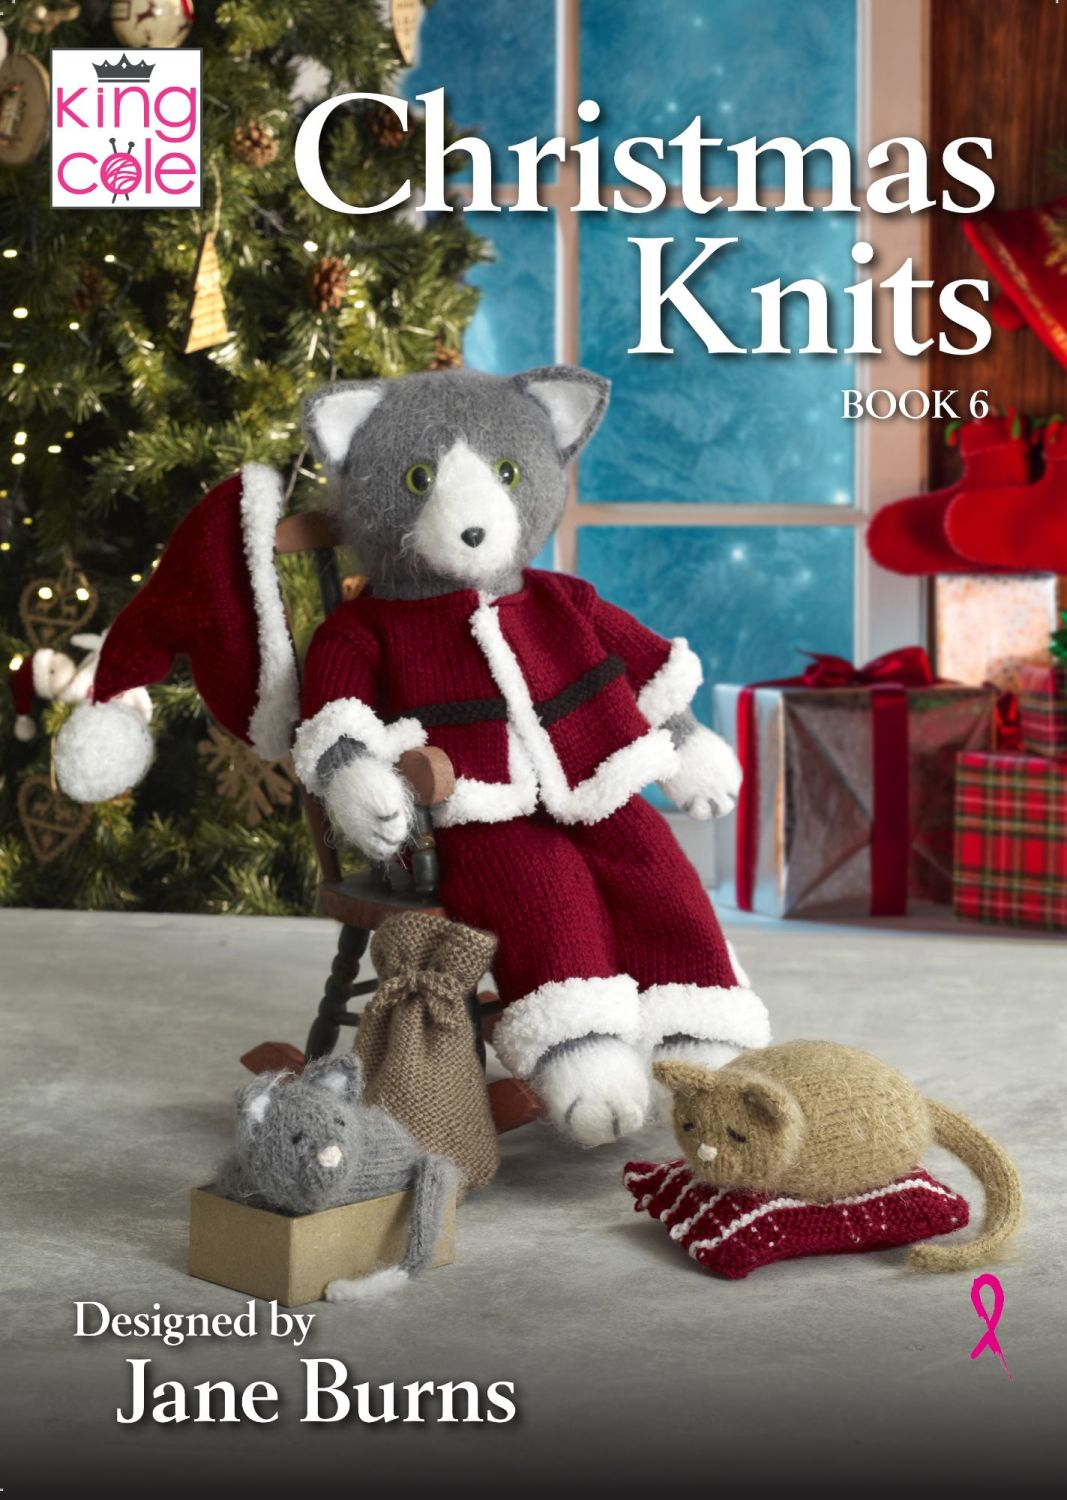 Christmas Knits Book 6 Designed by Jane Burns